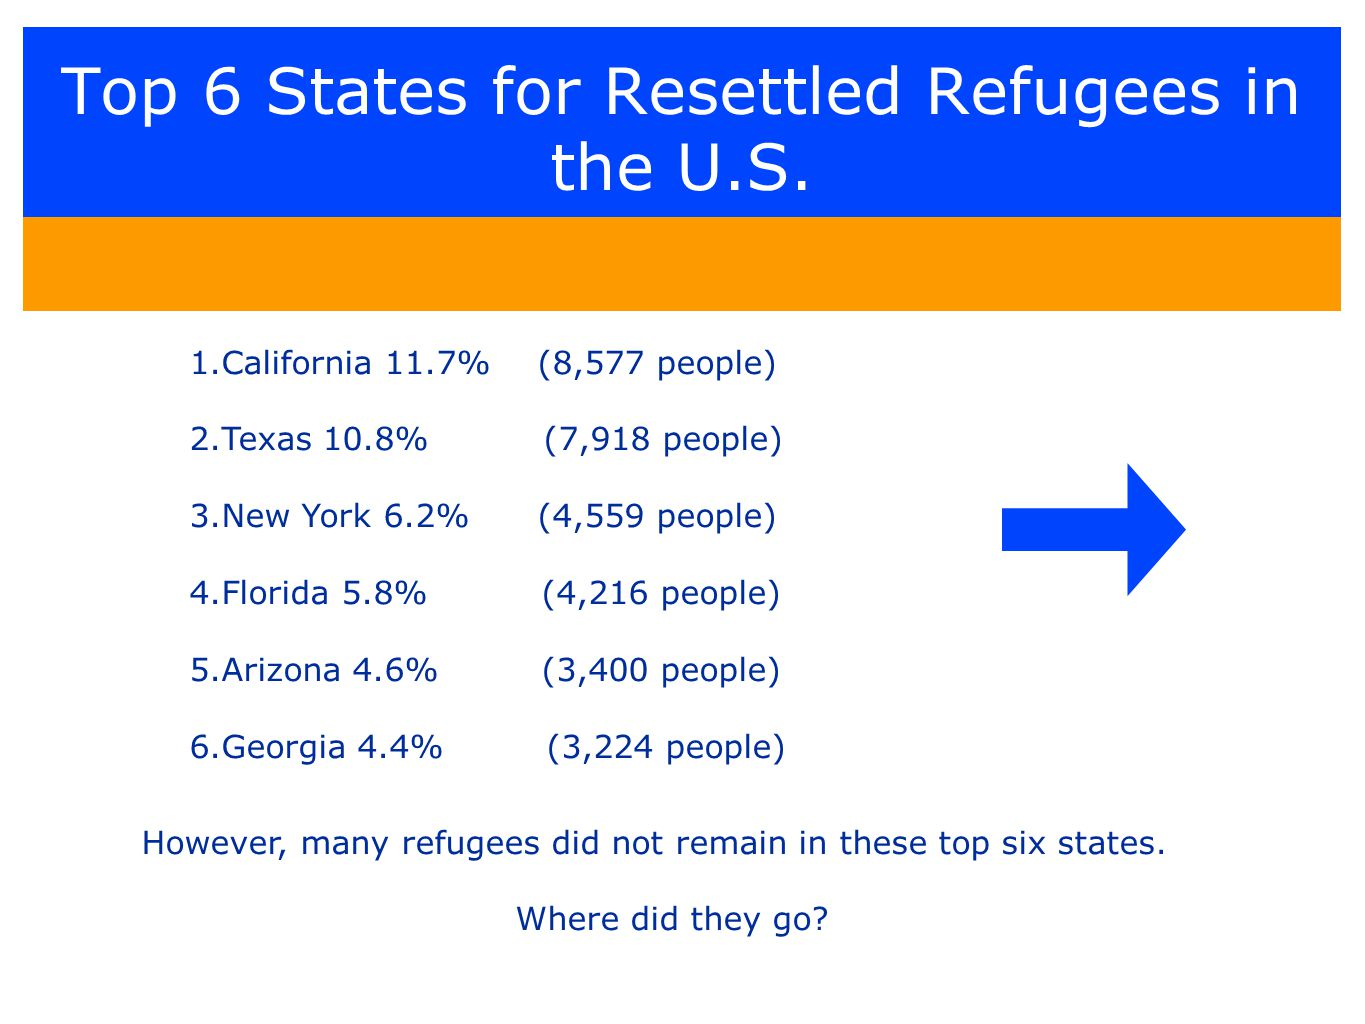 Top 6 States for Resettled Refugees in the U.S.